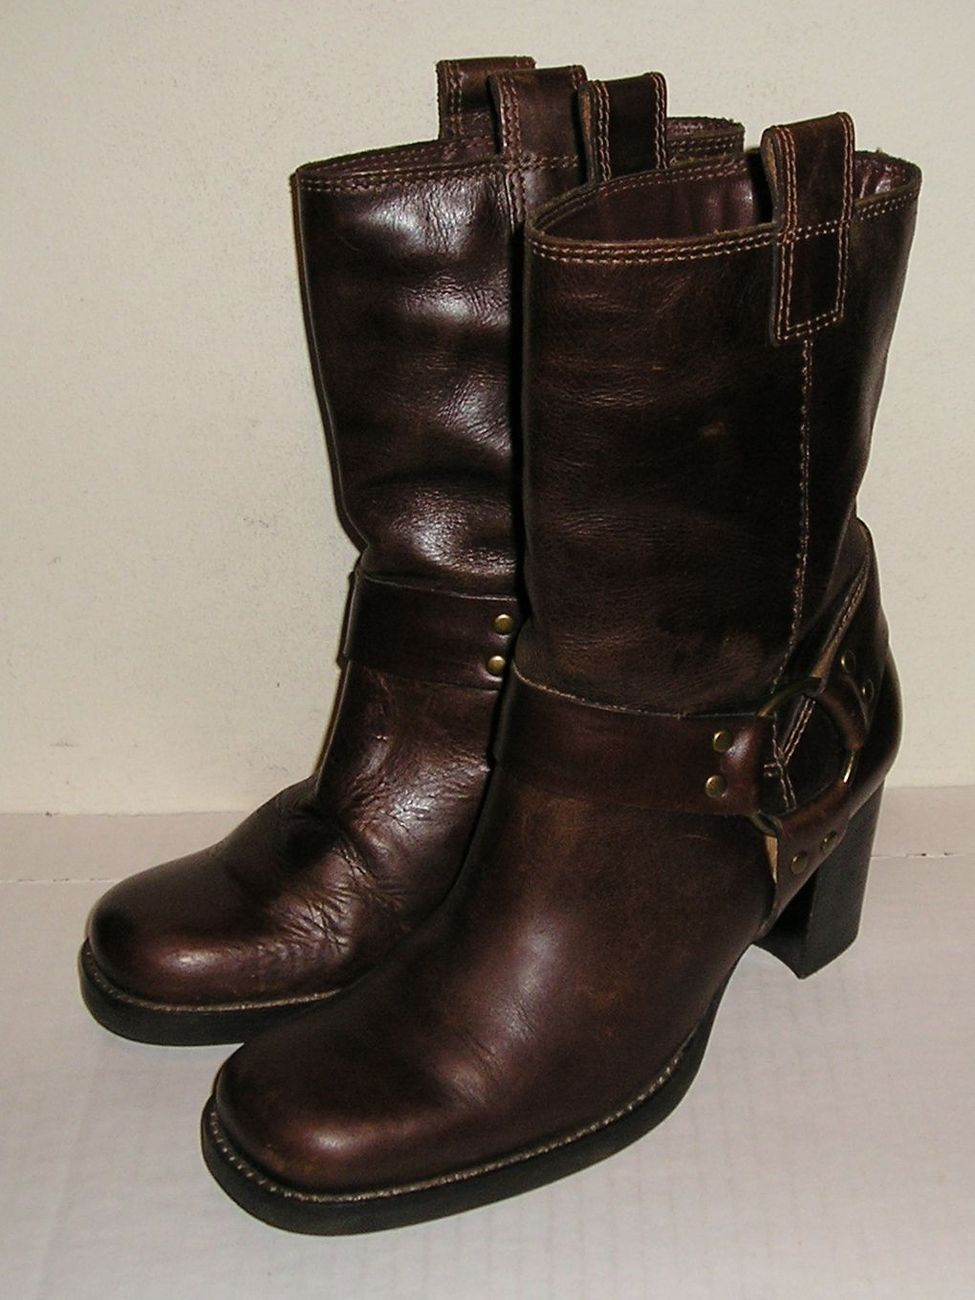 MIA Women's Brown Leather Riding Pull-On Heel Boots Shoes 6.5 M NICE!